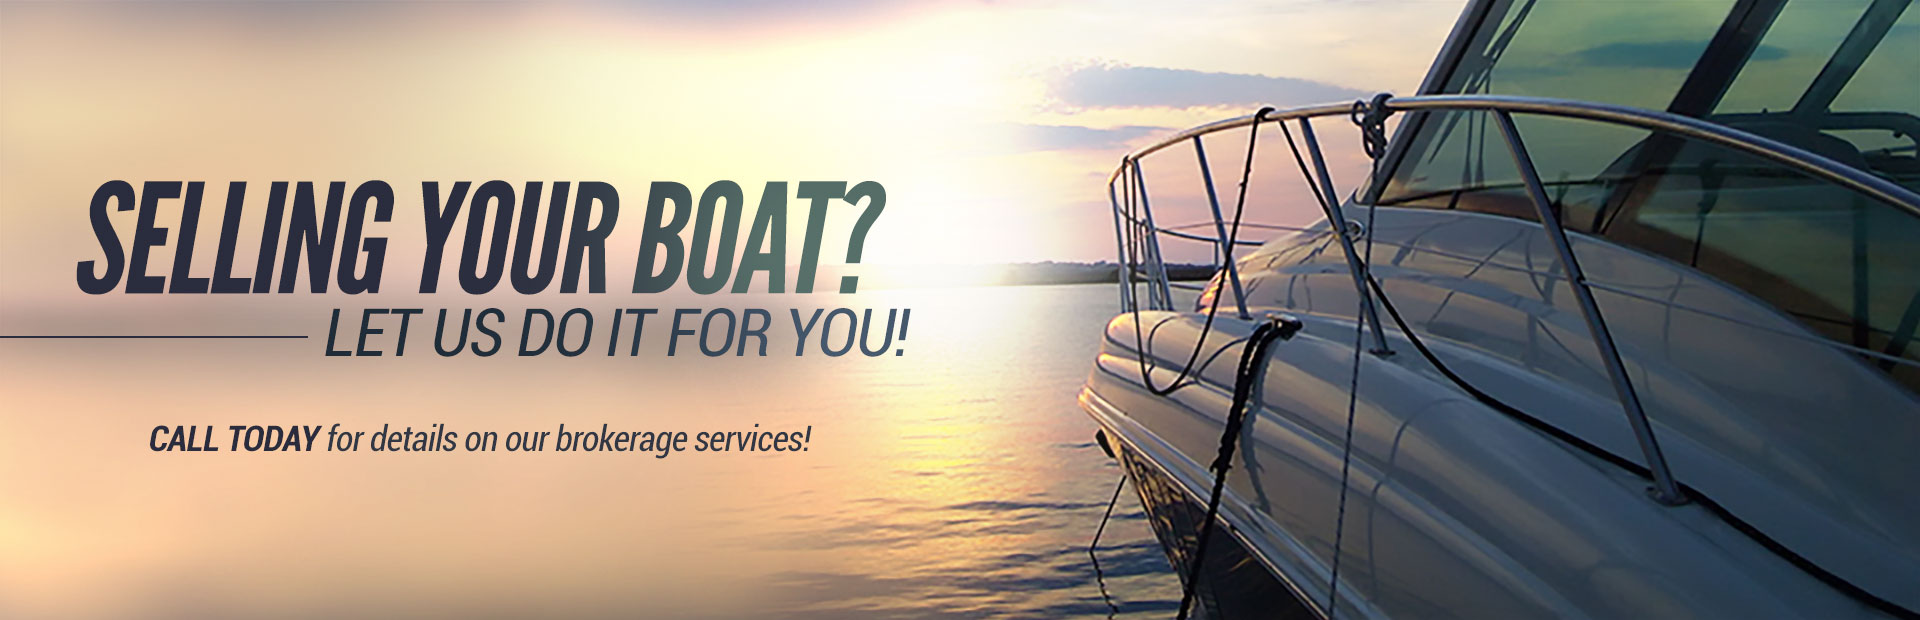 Call today for details on our brokerage services!